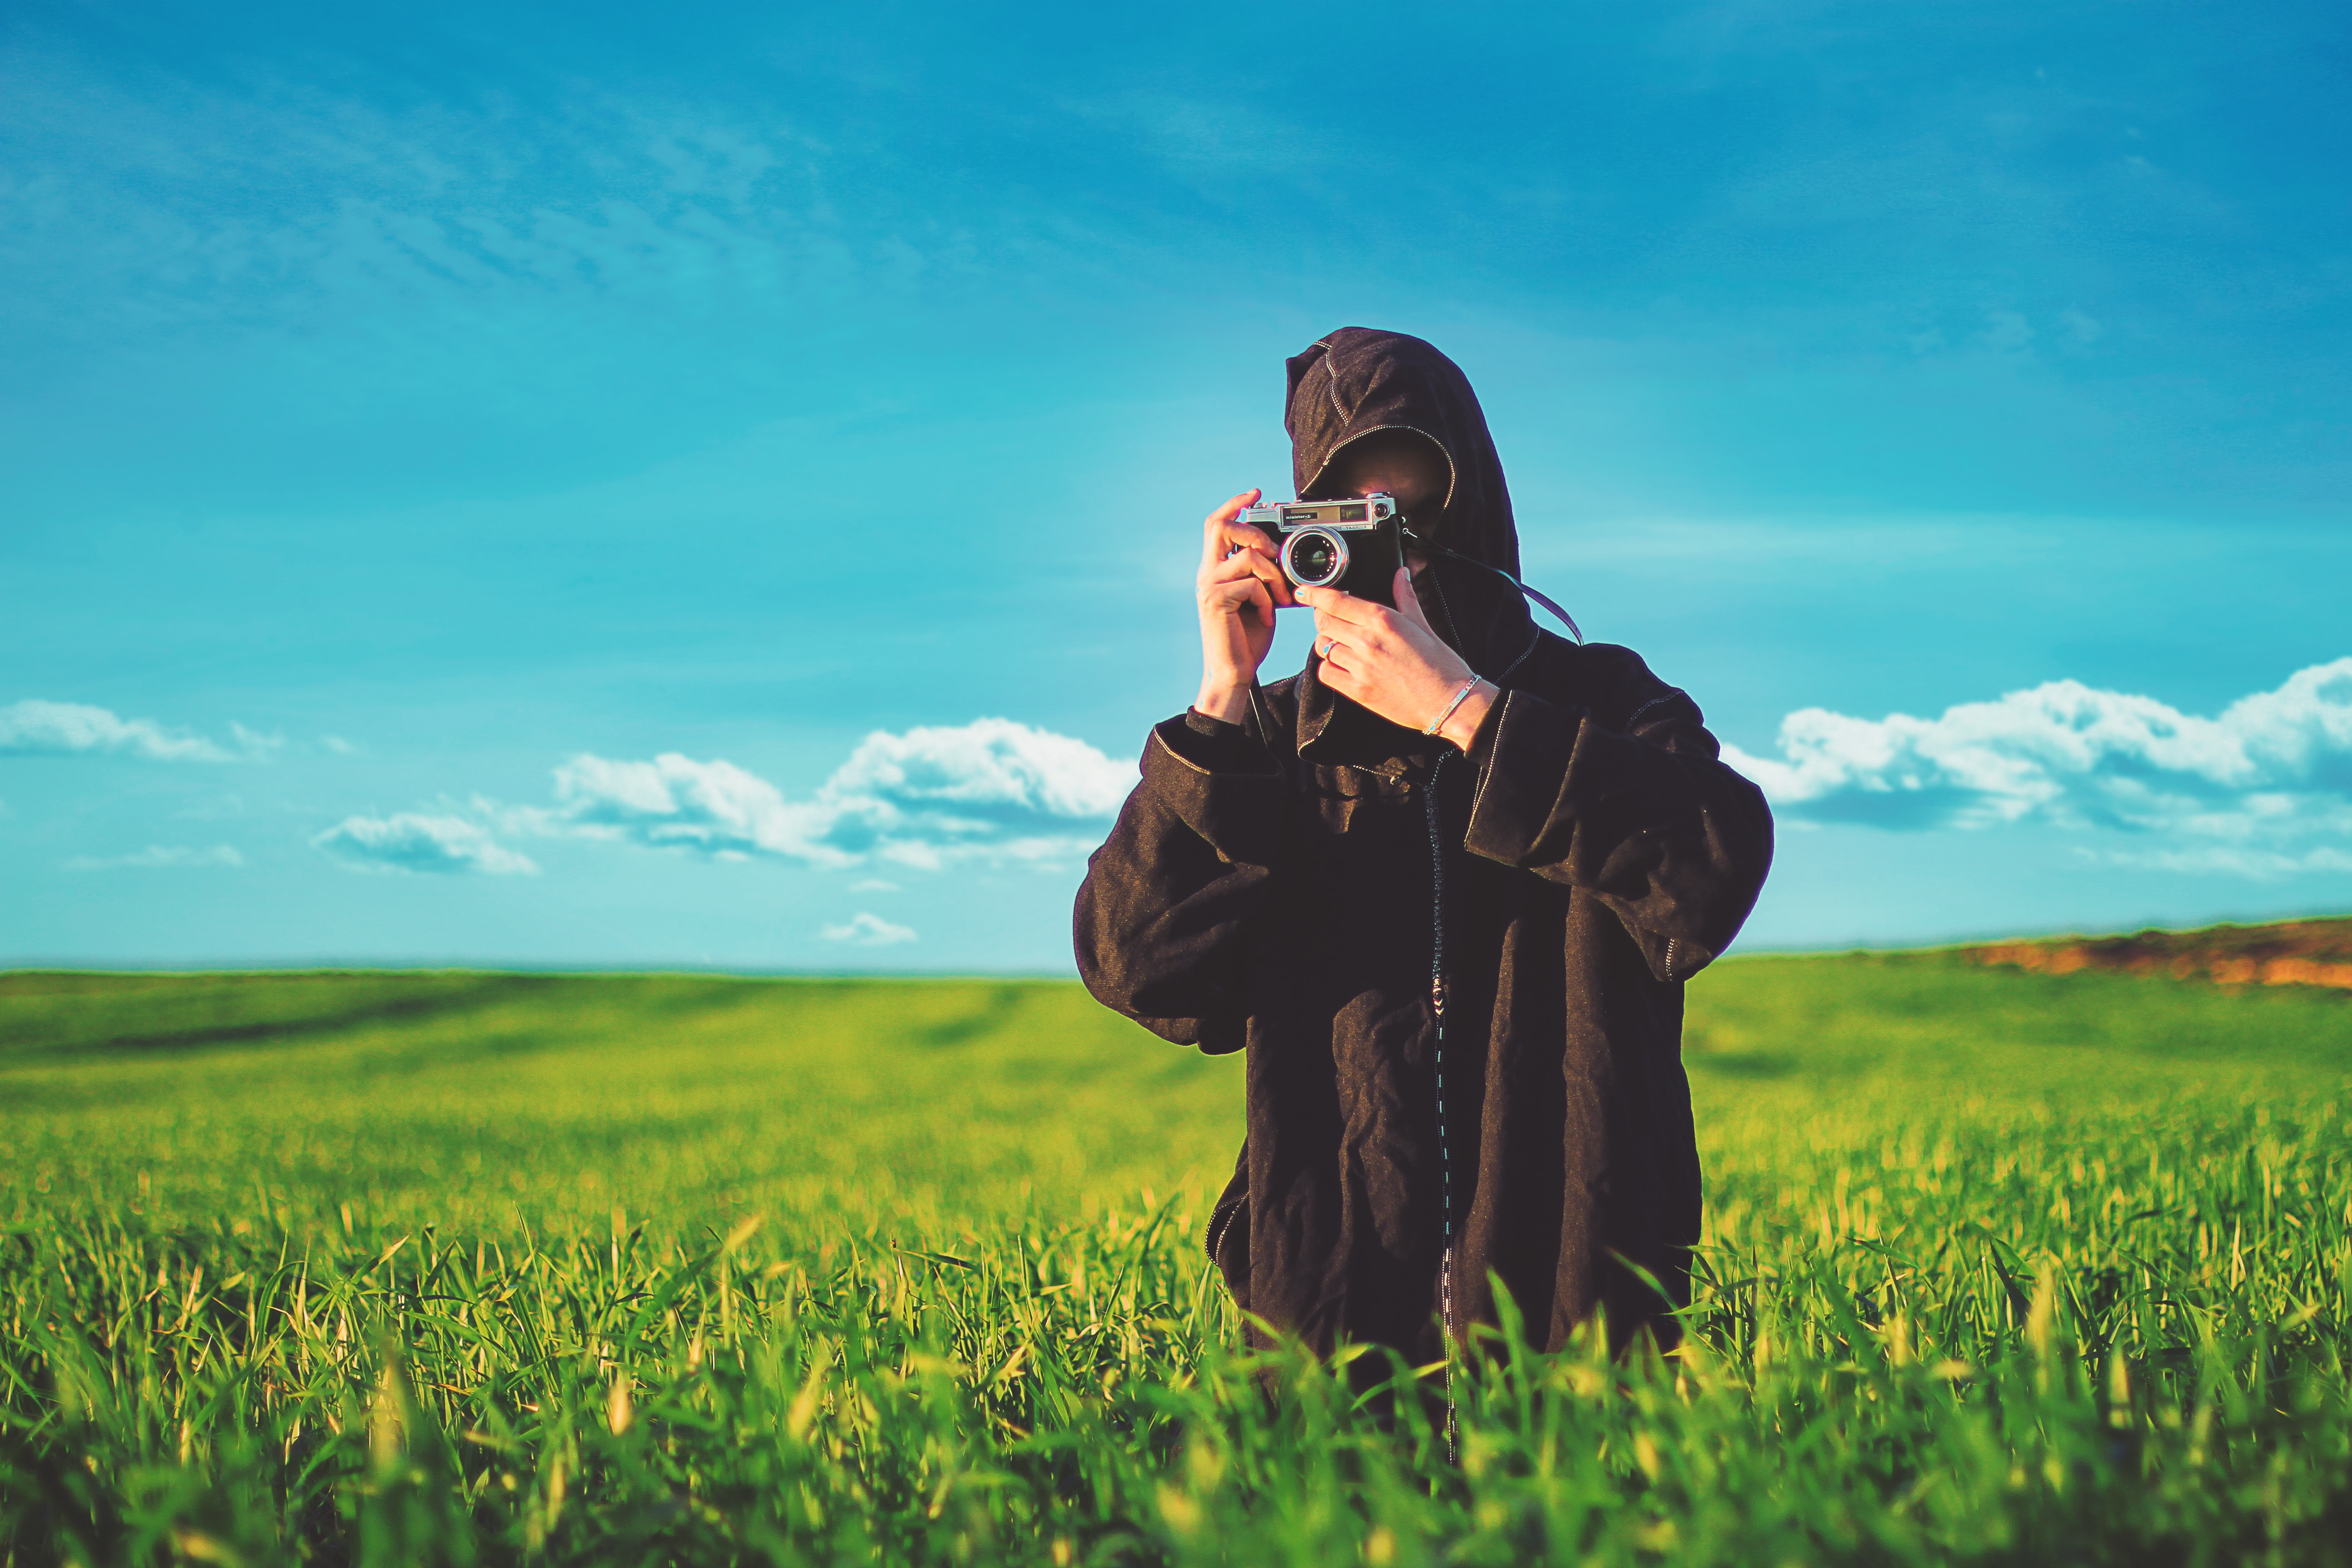 person taking photo using camera in green field